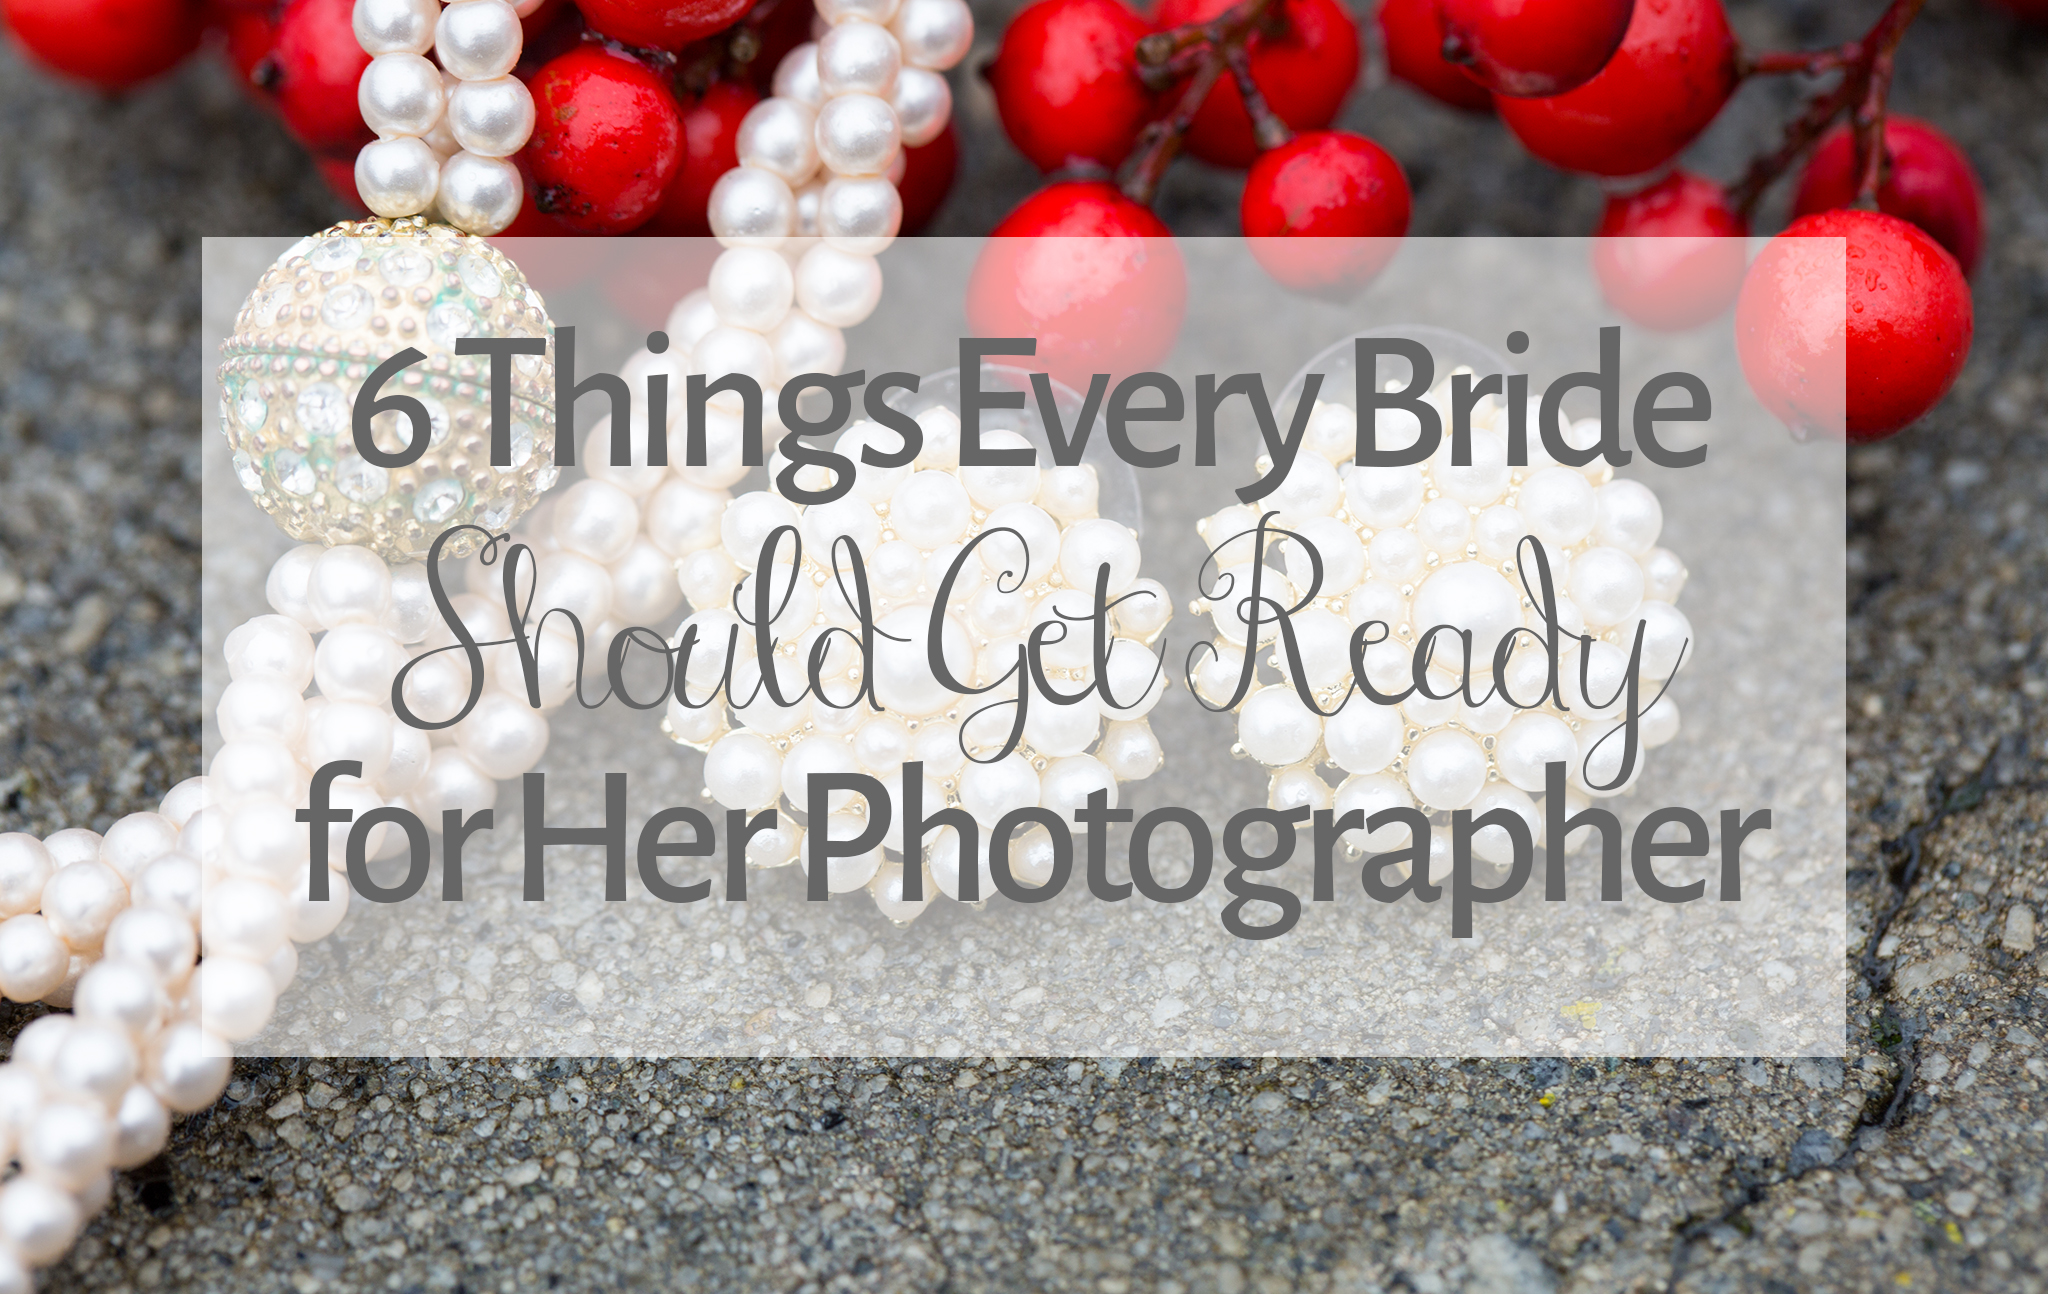 6 Things Every Bride Should Get Ready for Her Photographer